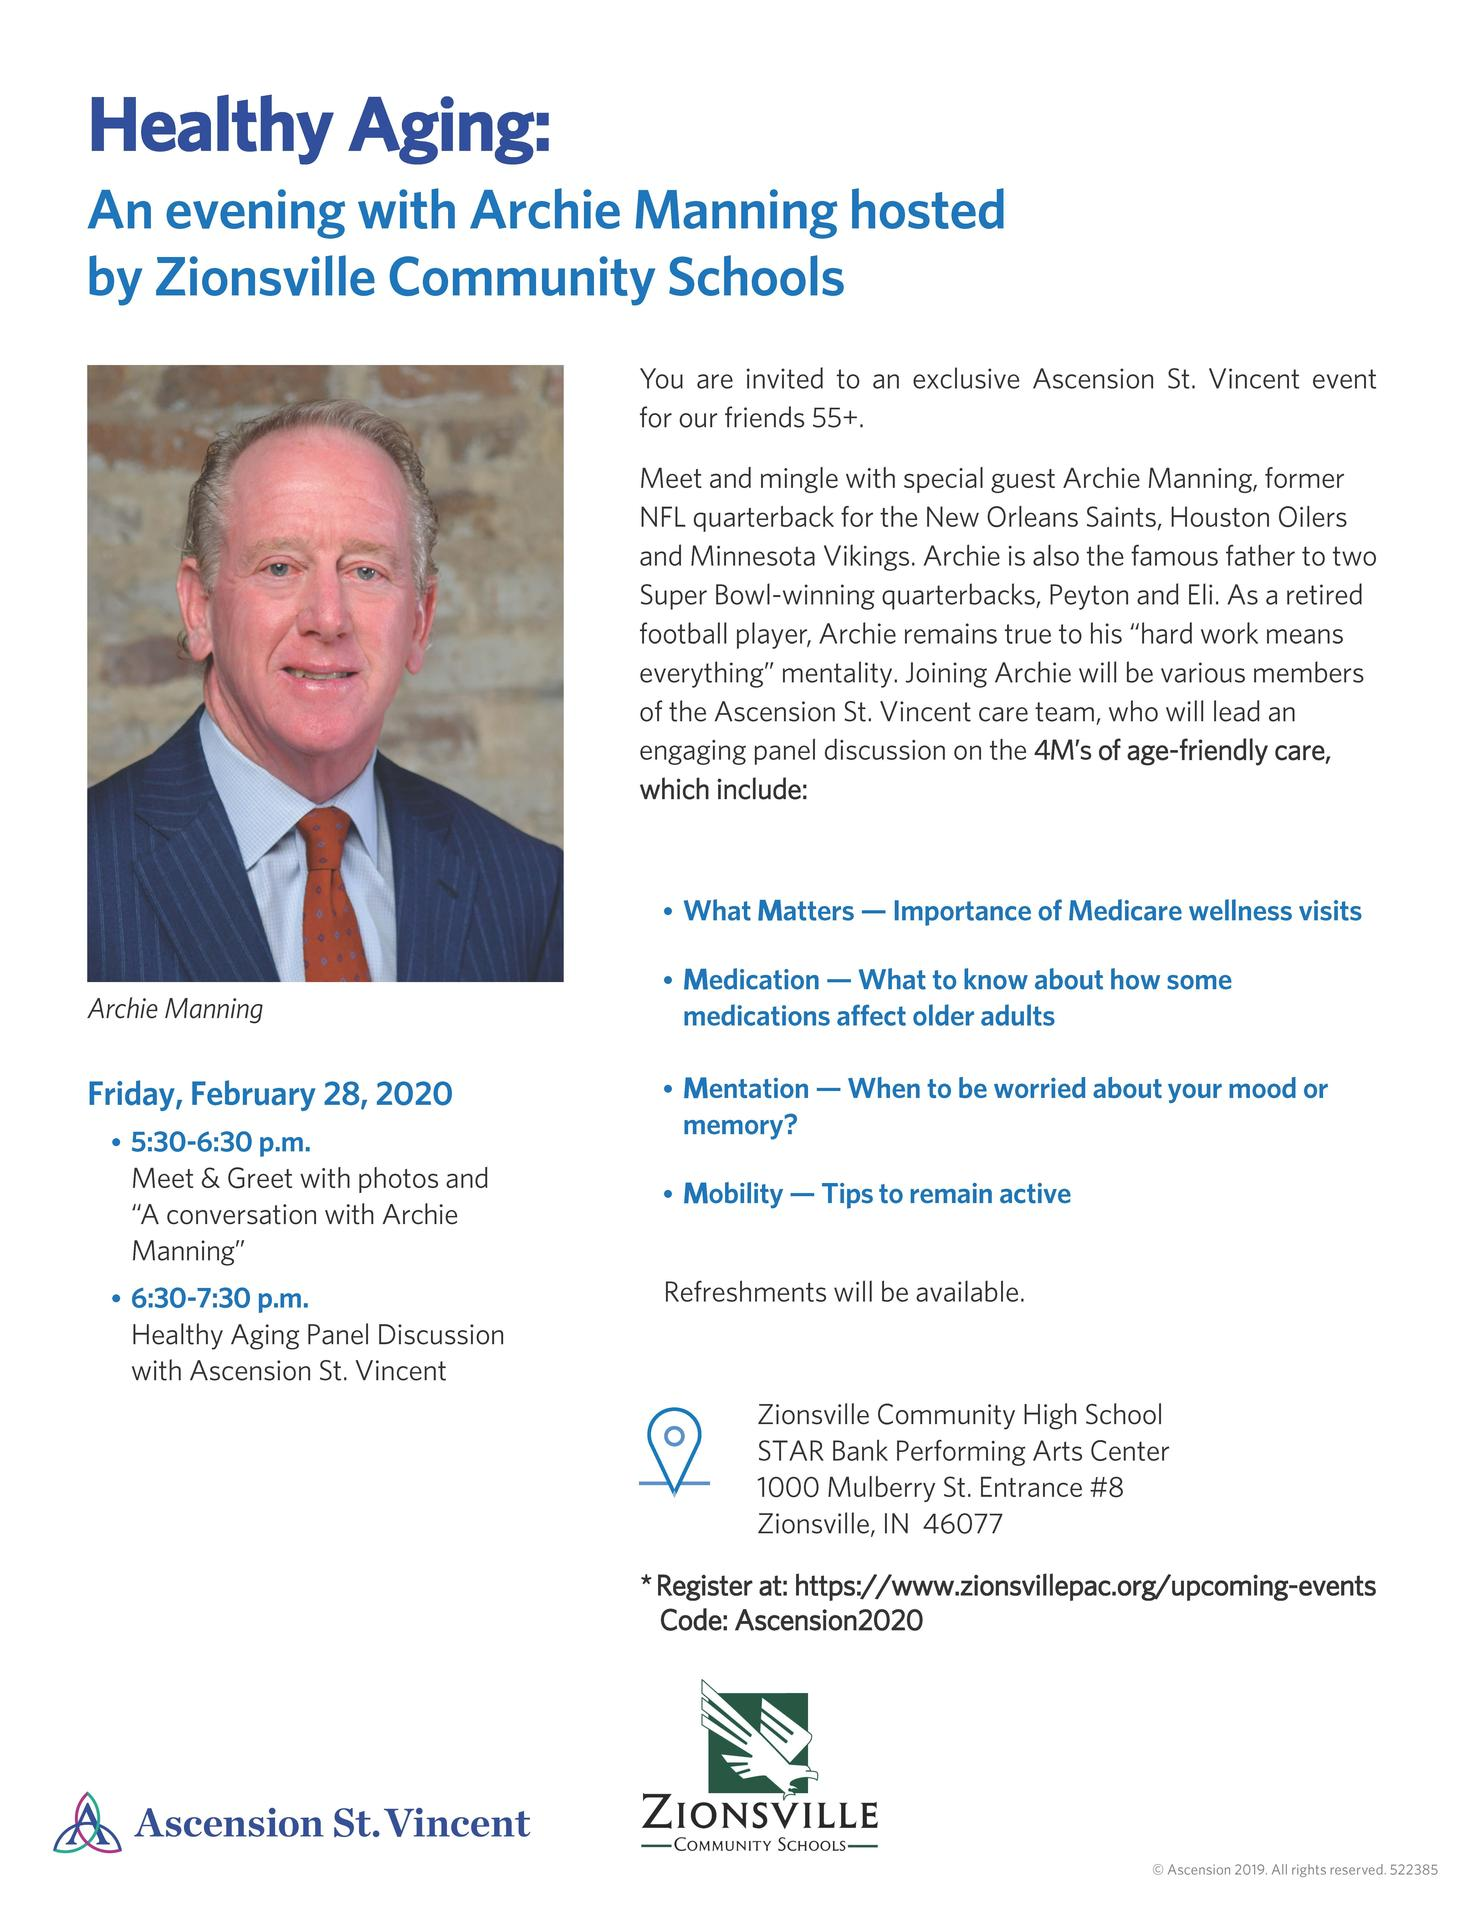 Healthy Aging with Archie Manning